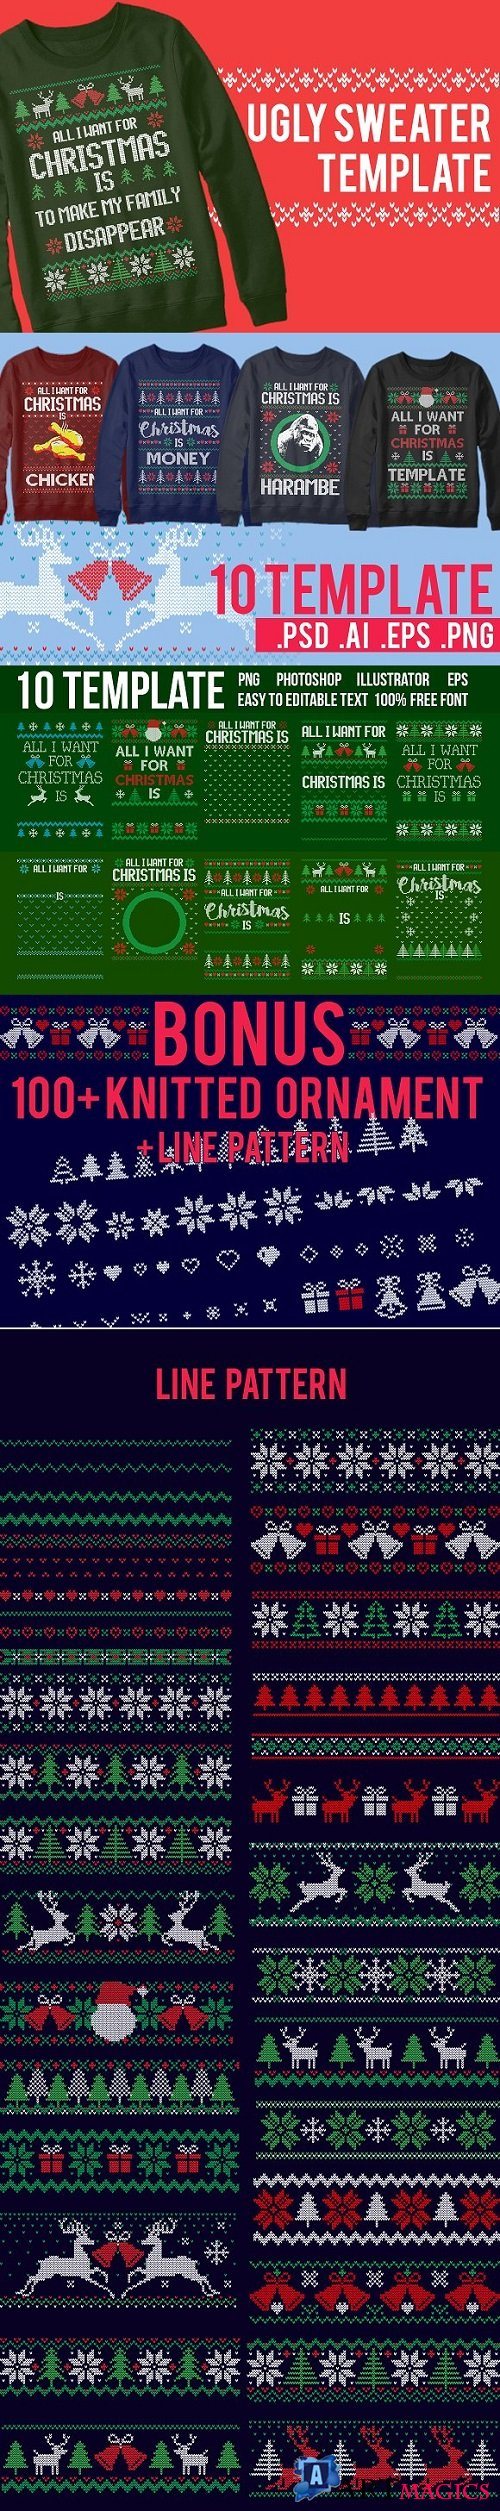 Ugly Sweater Templates - 2000928